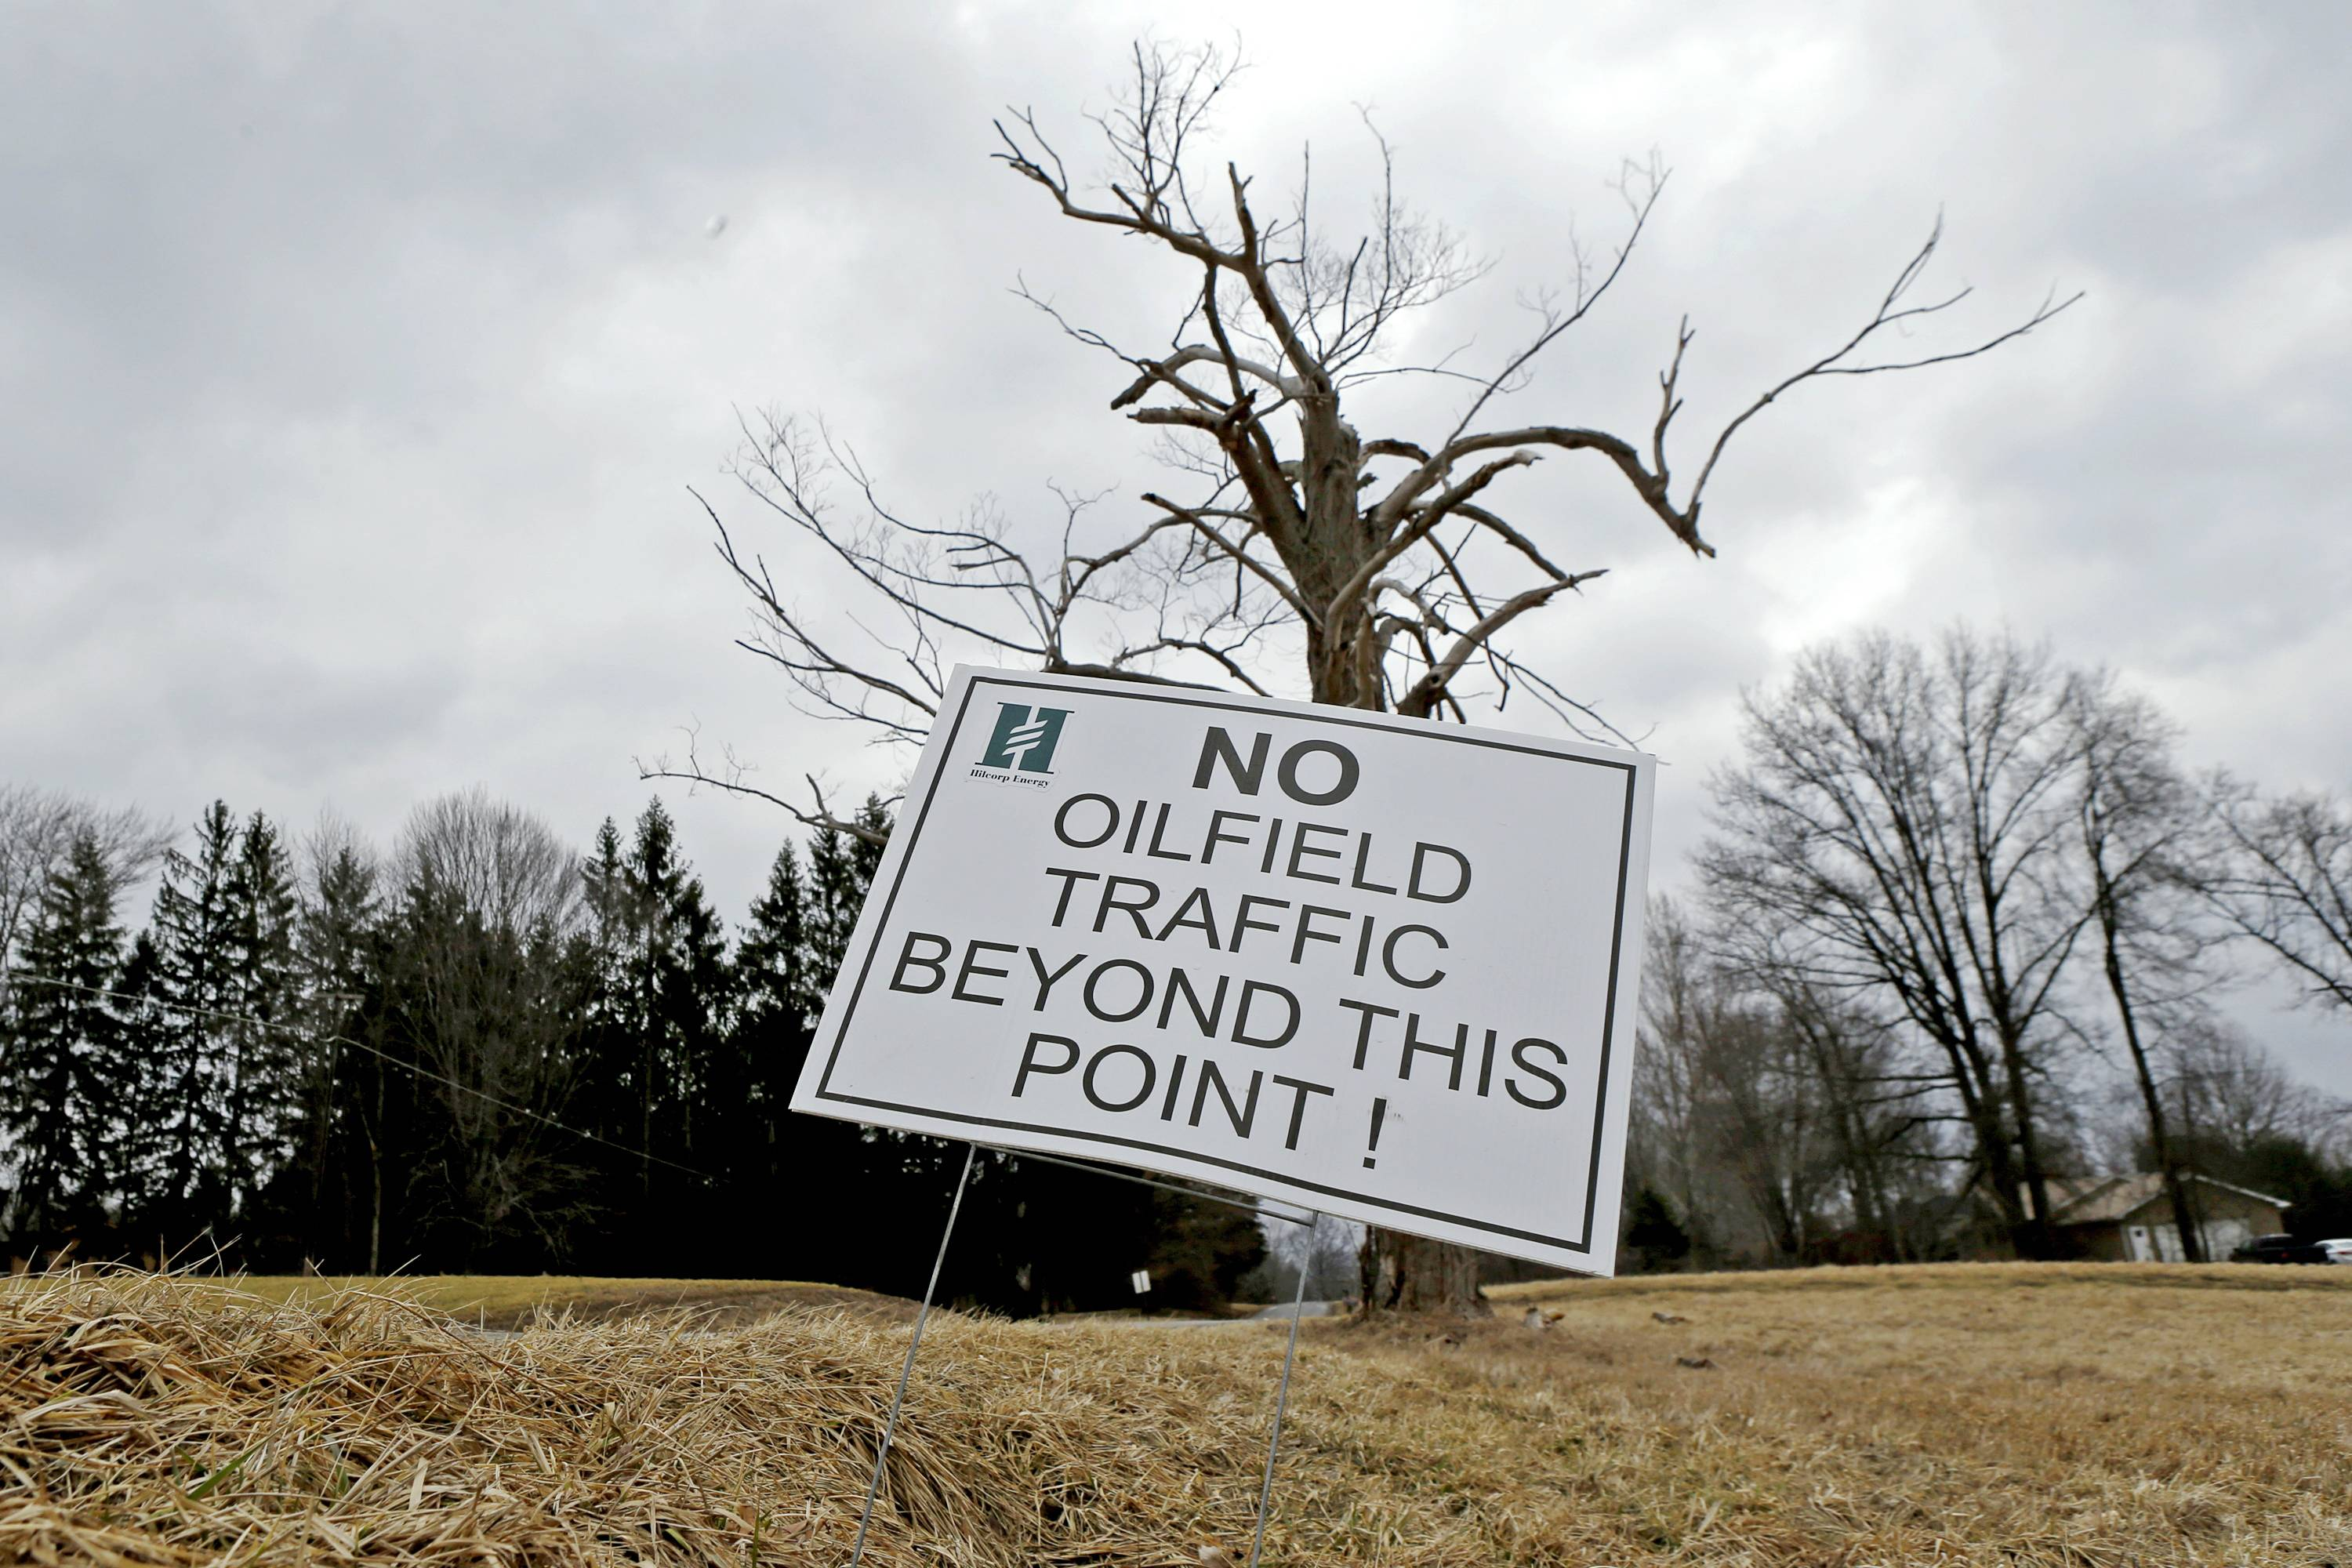 A sign near a gas well drilling site is seen near a road in Pulaski, Pa. The gas drilling company Hilcorp that is working the well has asked state officials to invoke a 1961 law in the rural area and allow Utica Shale well bores under the property of four landowners who have not signed leases.